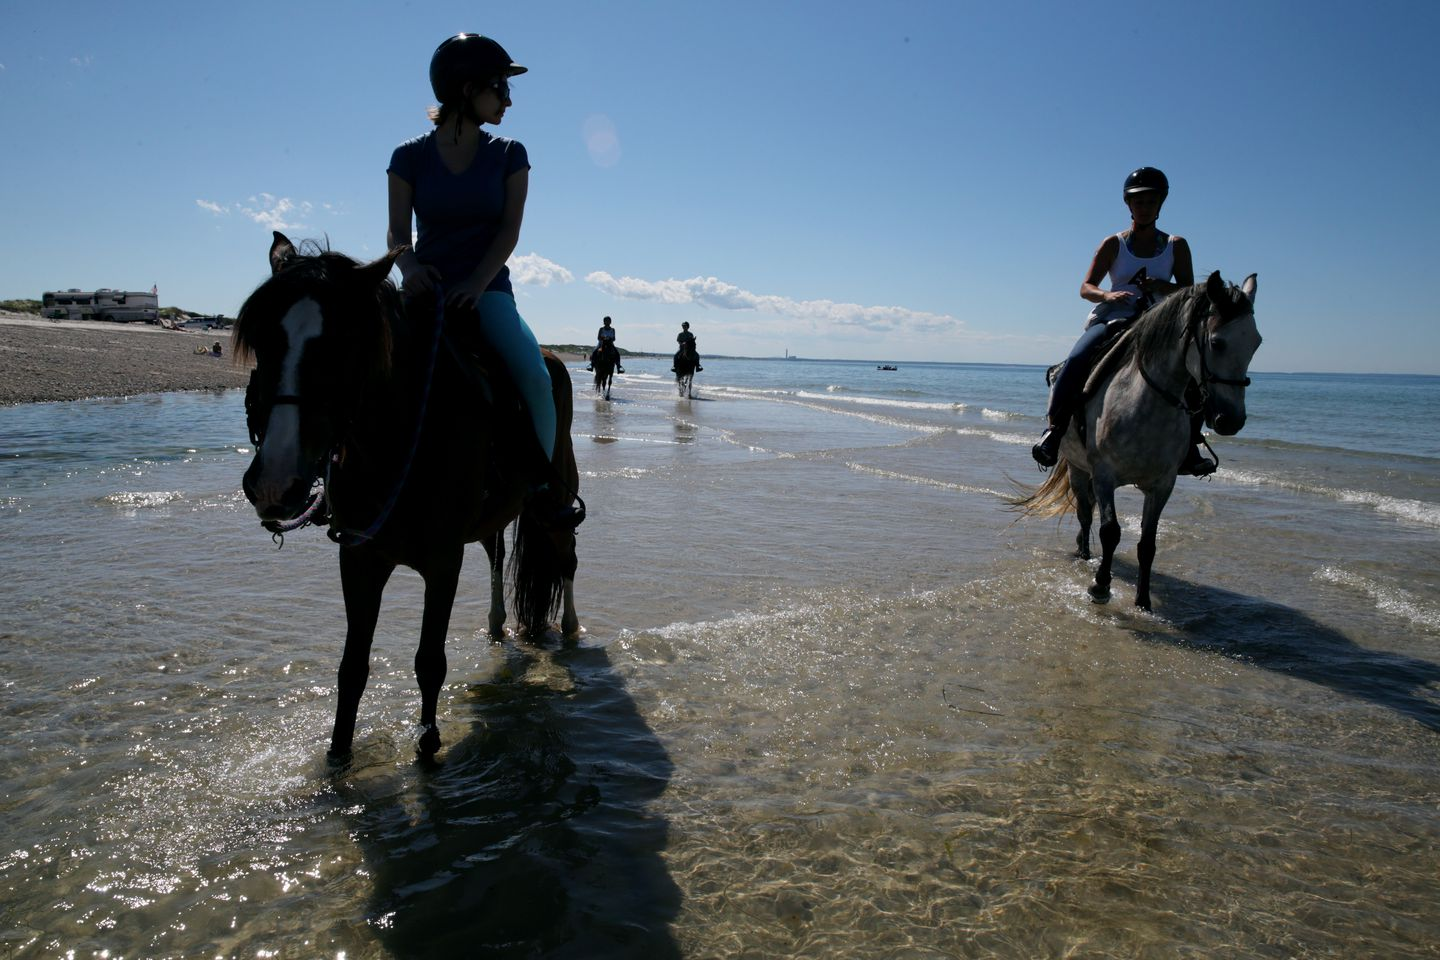 A tour of Sandy Neck Beach in Barnstable led by Esperanza Riding Company.